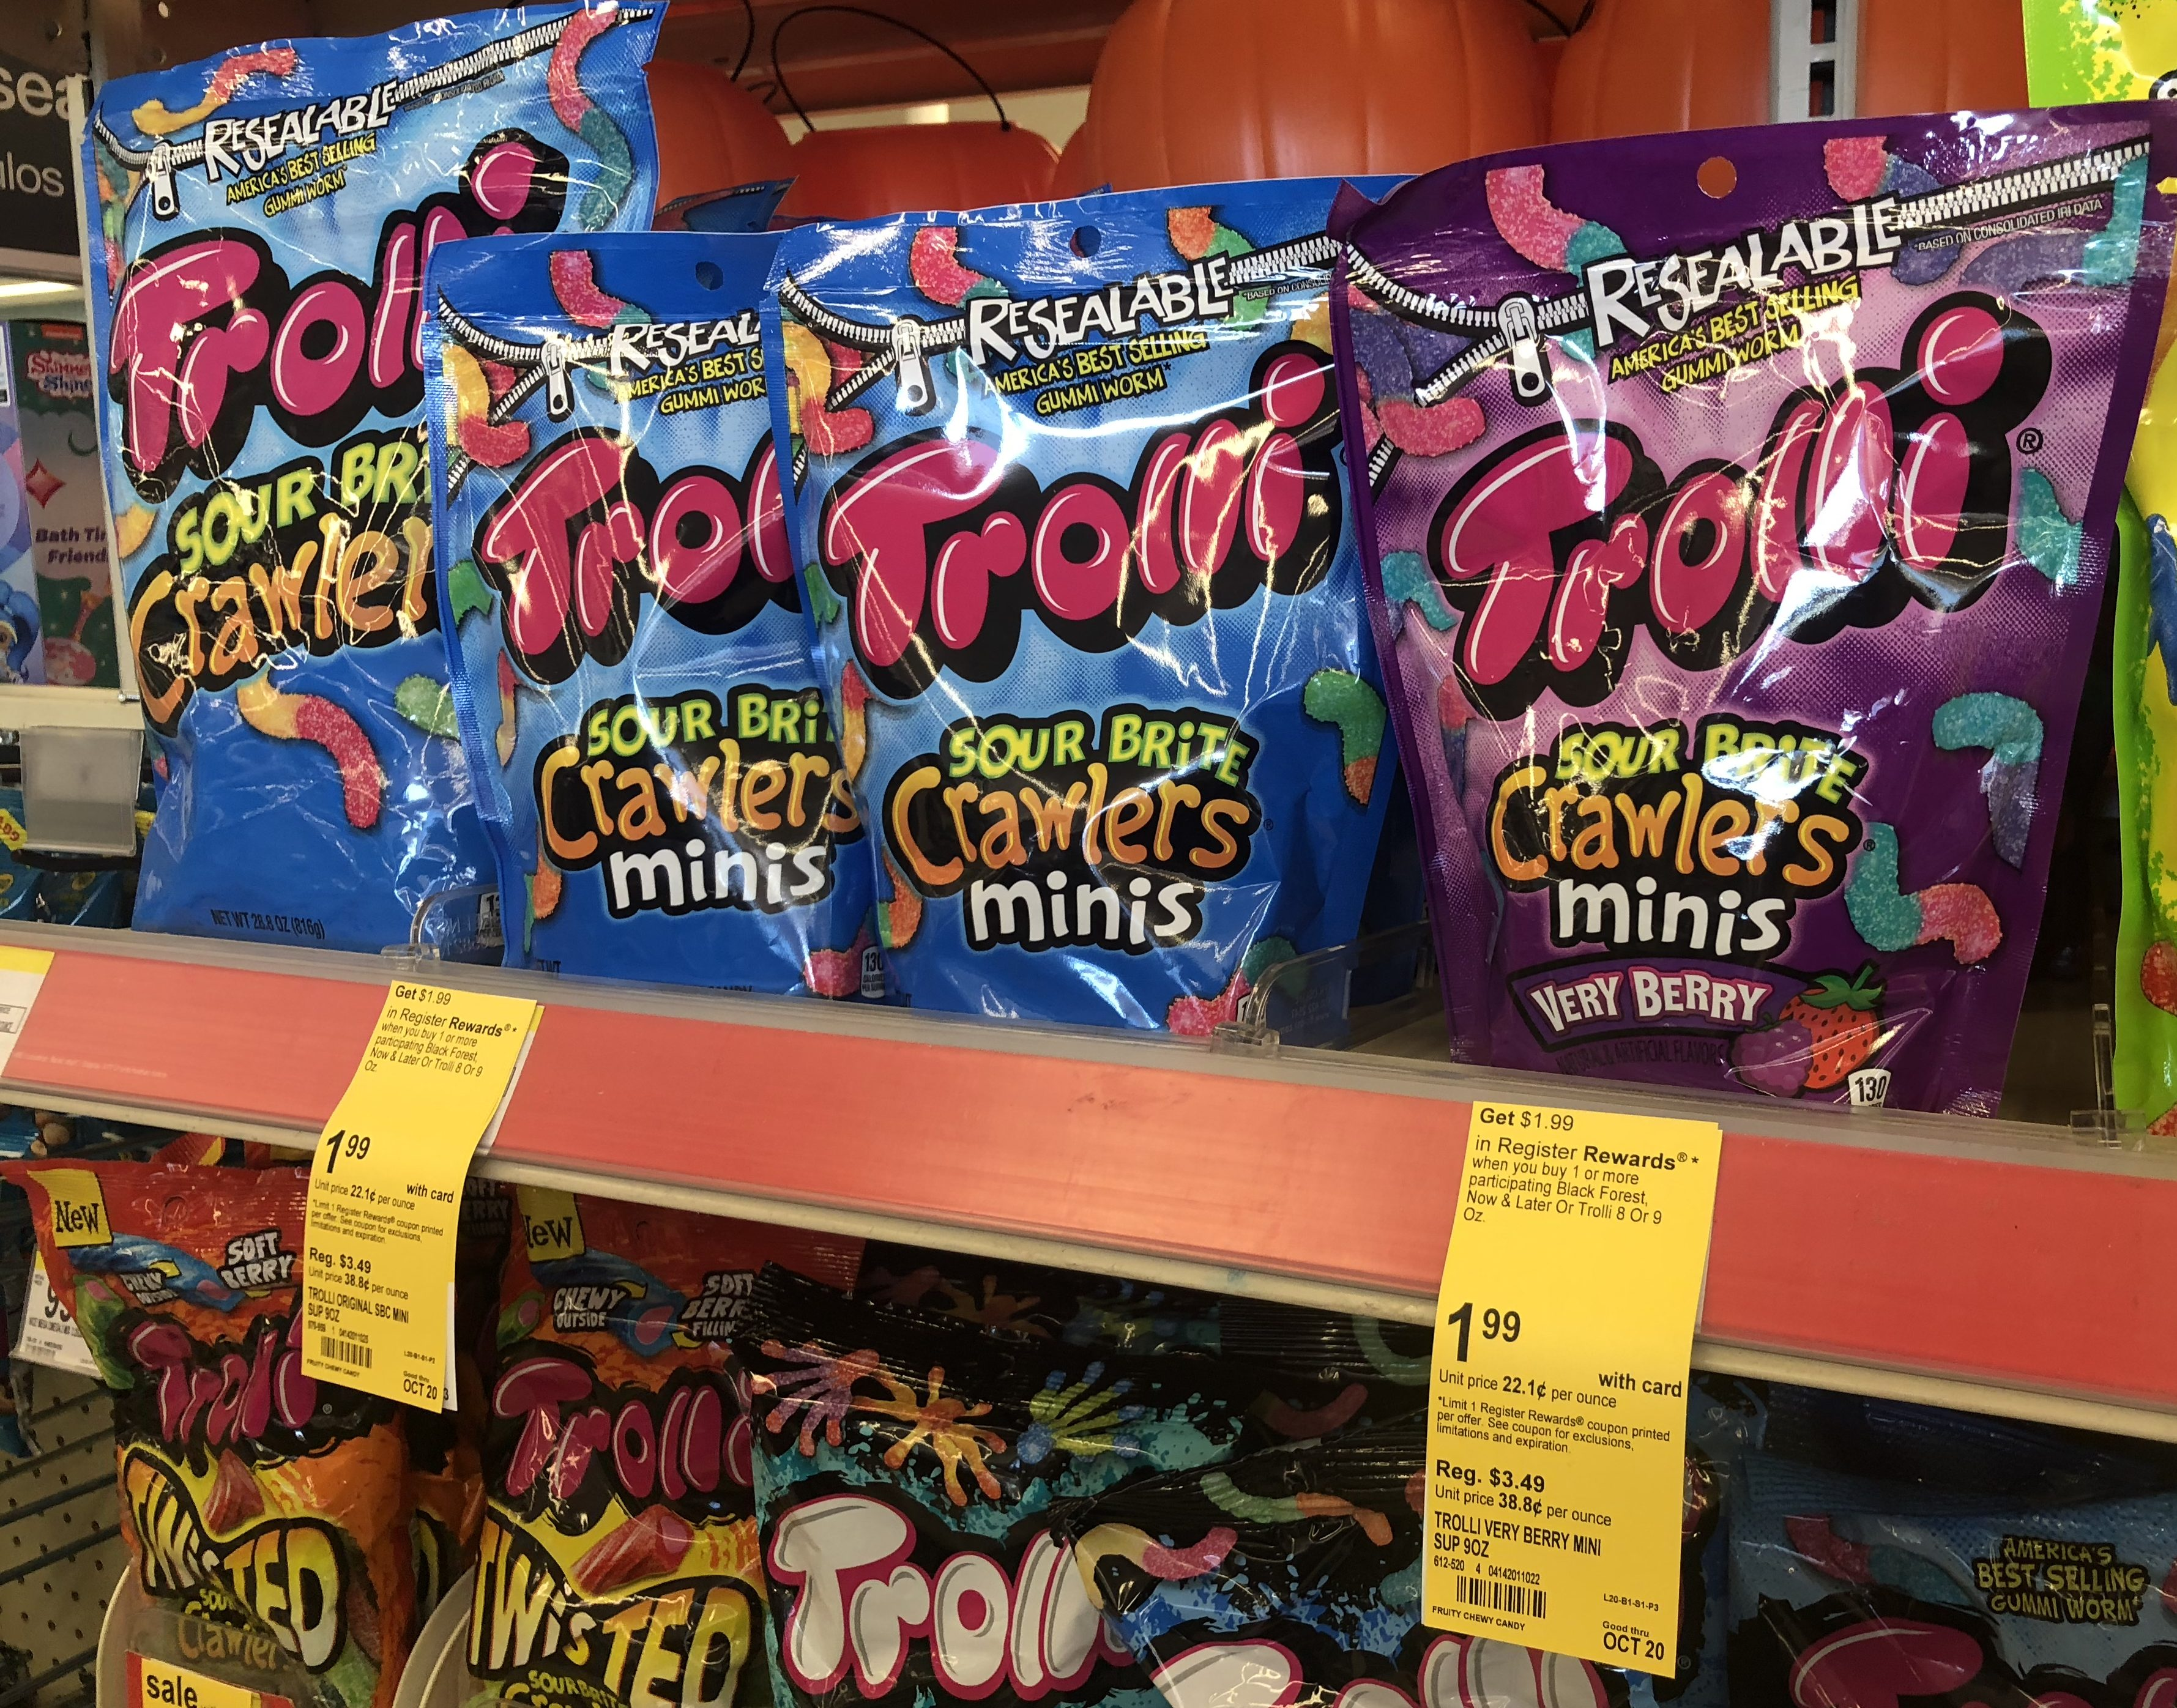 target & walgreens deals, coupons, & freebies 10-17-2018 –Trolli Candy deal at Walgreens